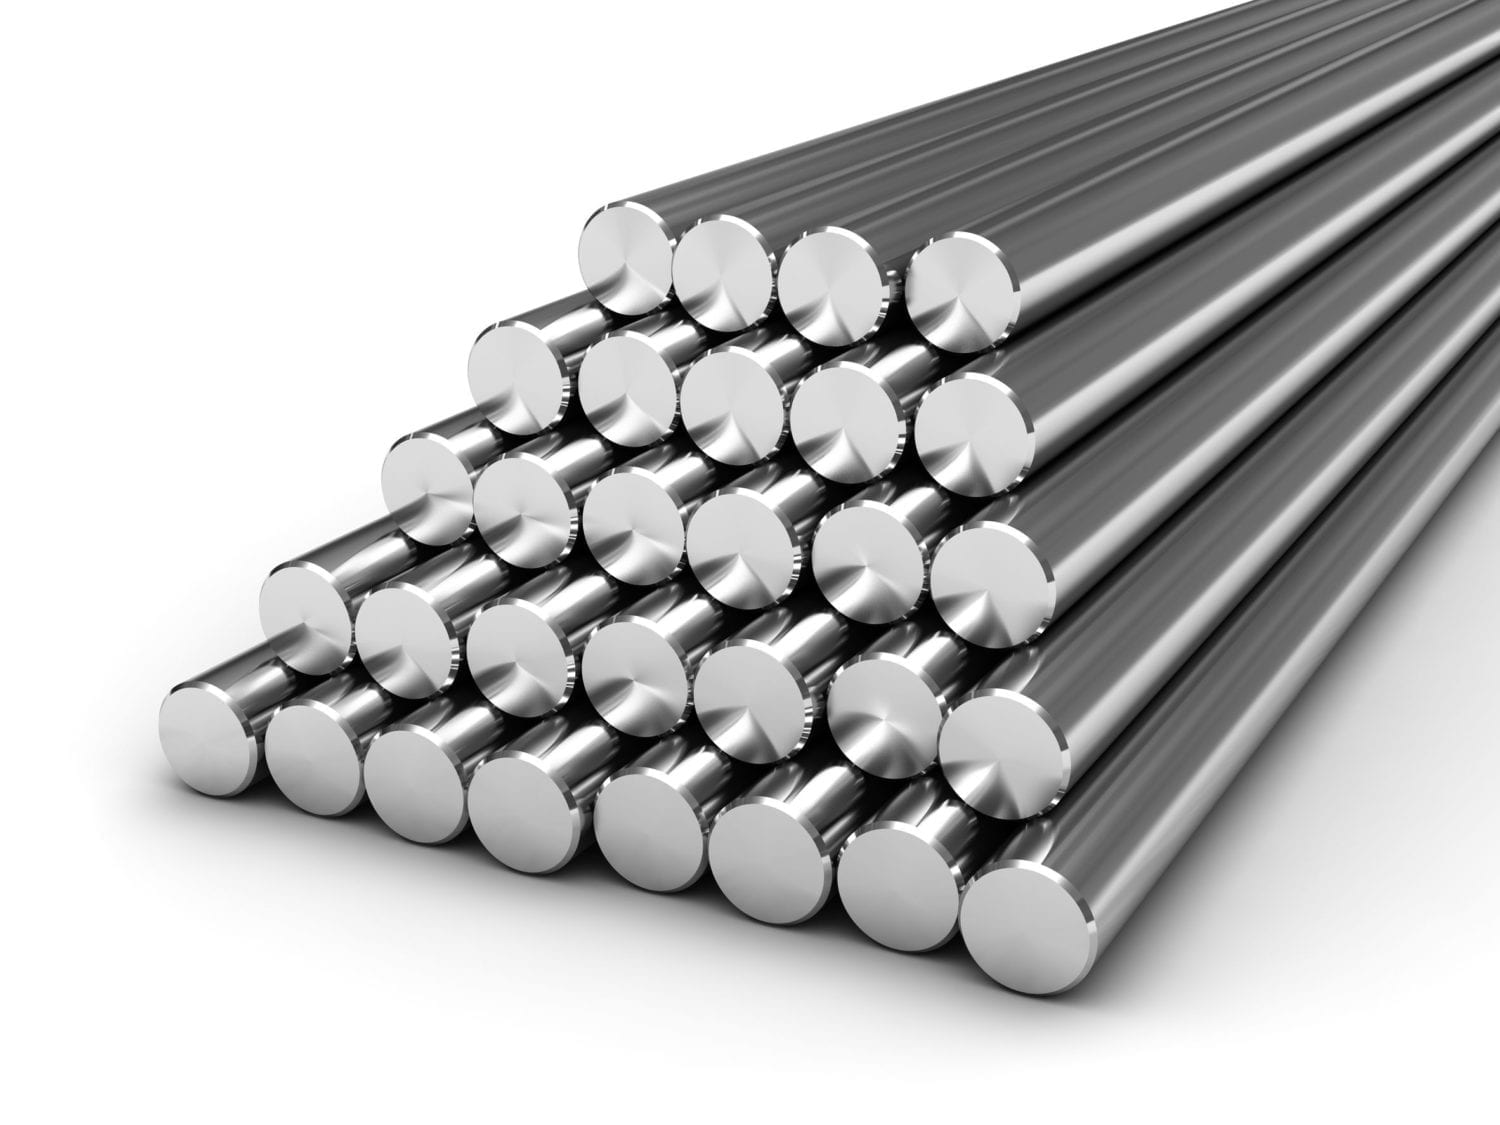 Stainless Steel Rebars